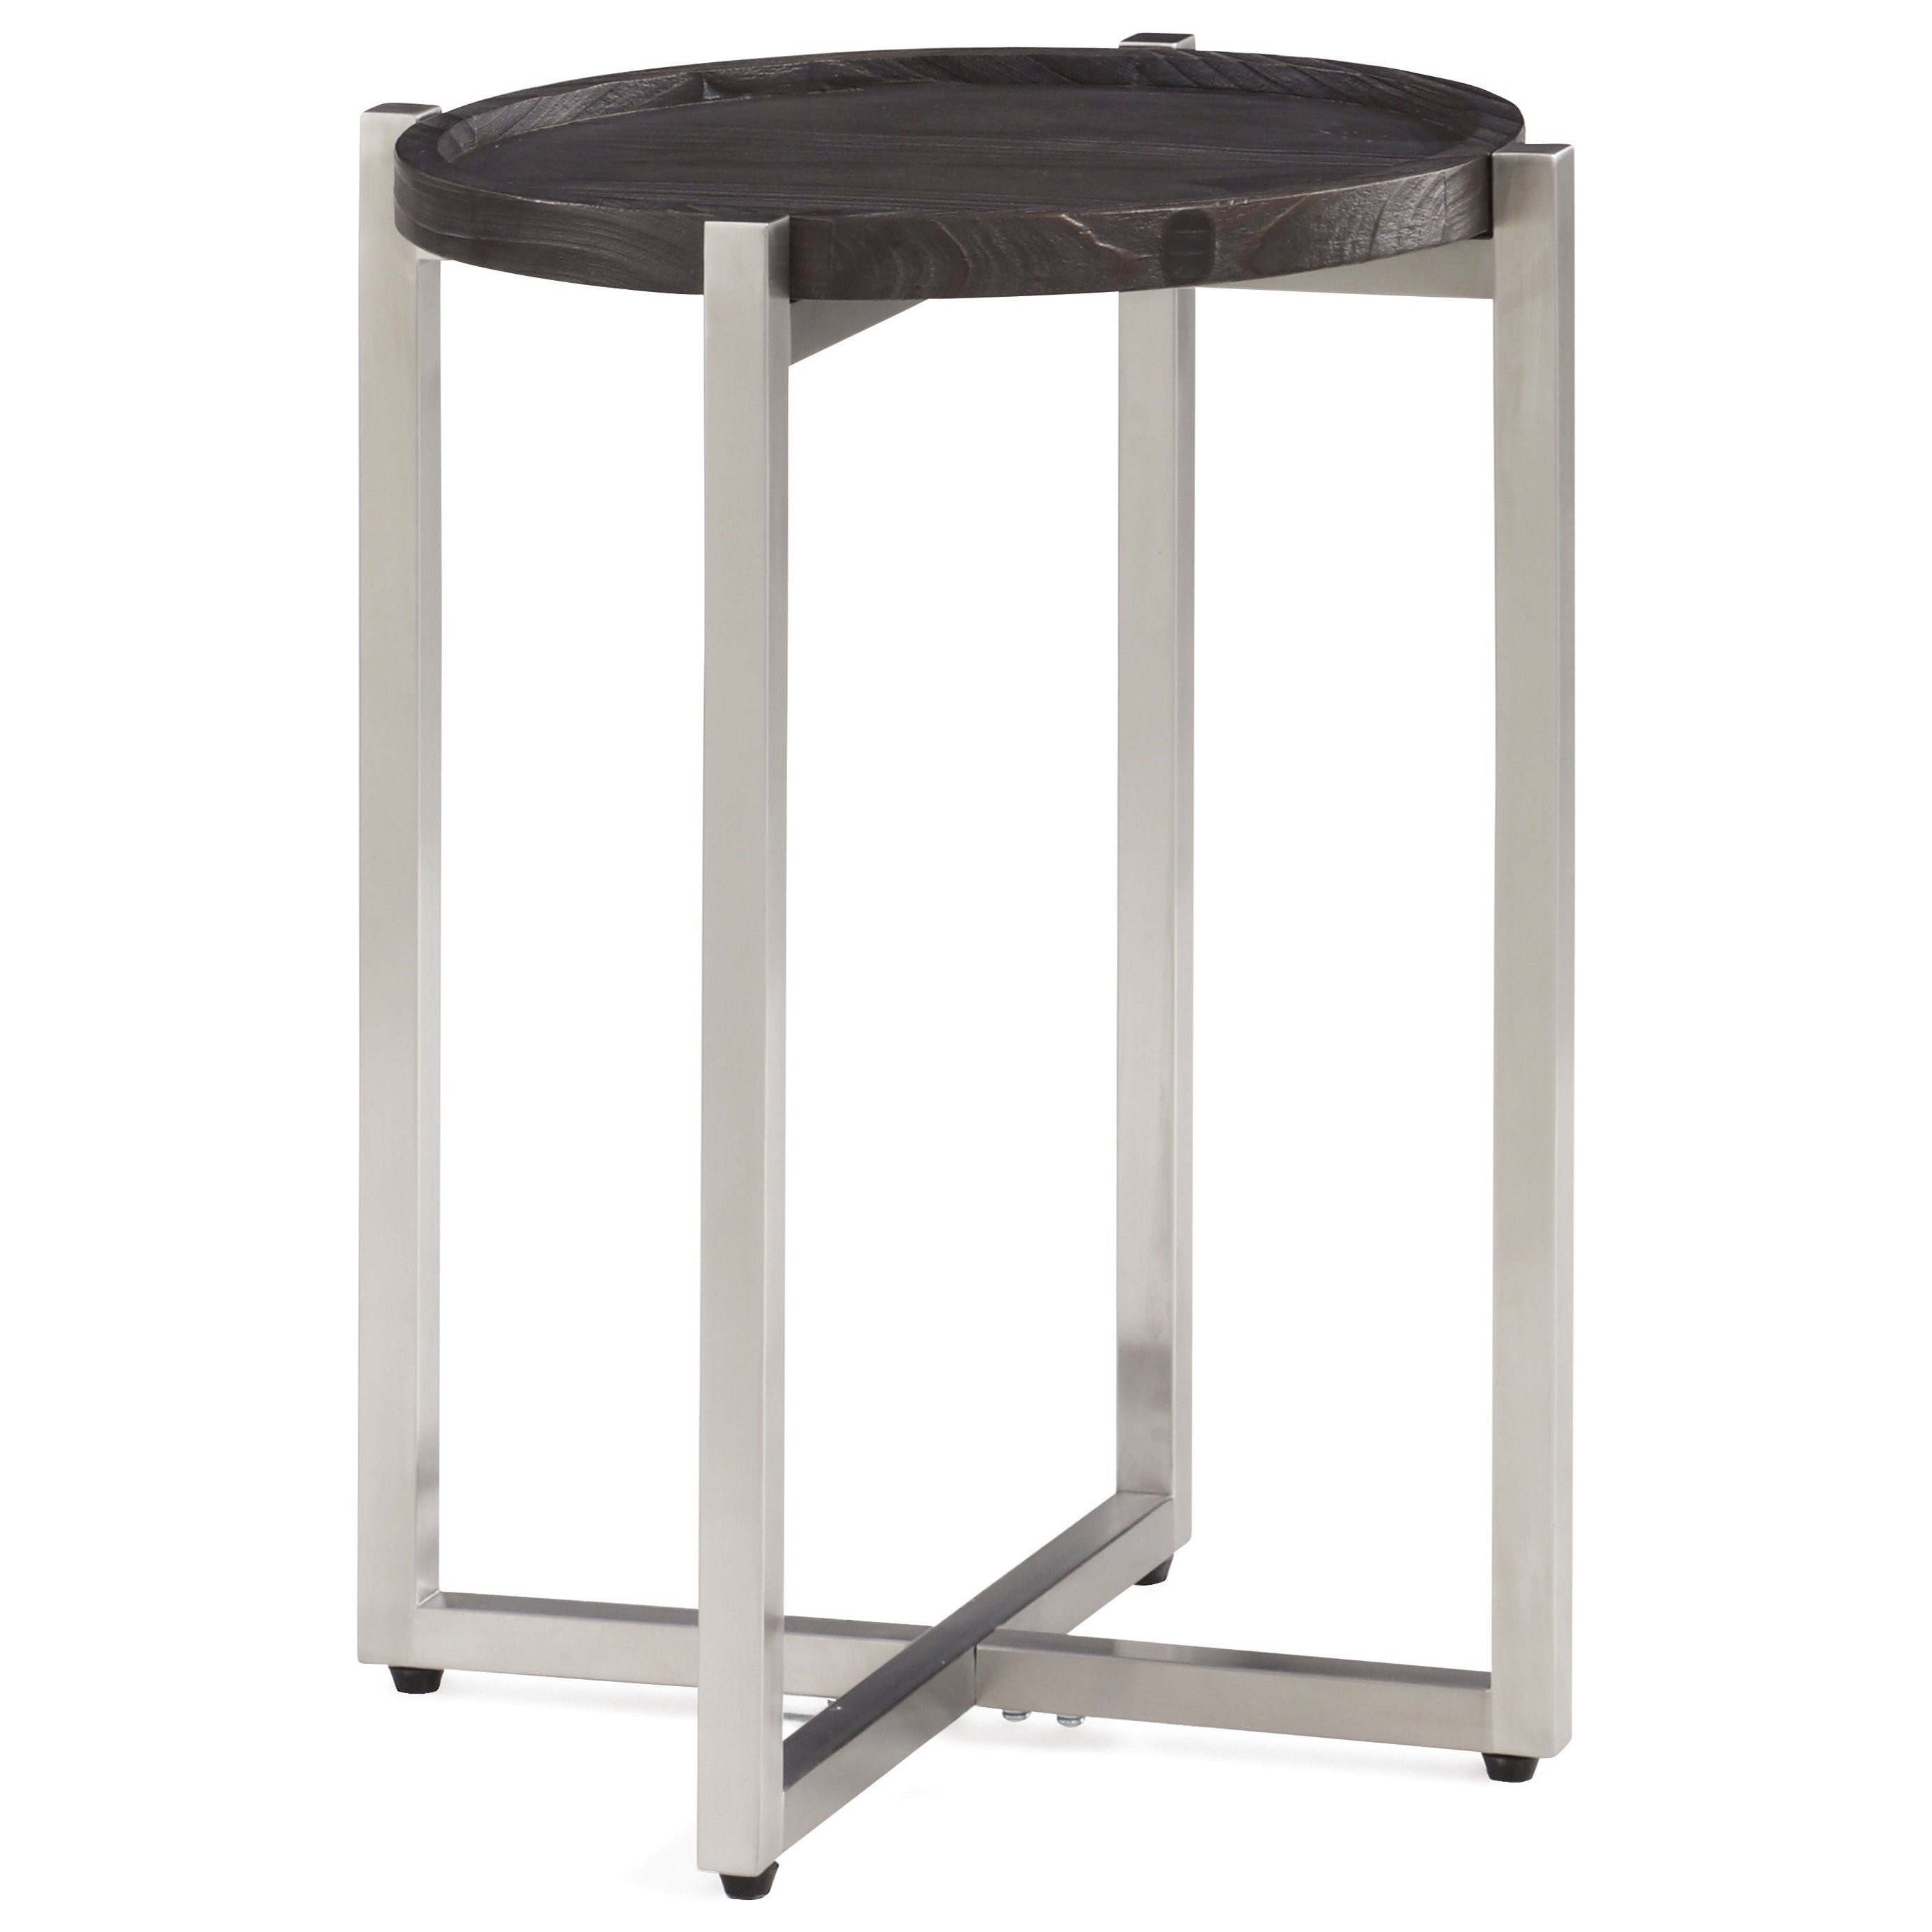 Pacey Pacey Chairside Table by Flexsteel Wynwood Collection at Morris Home